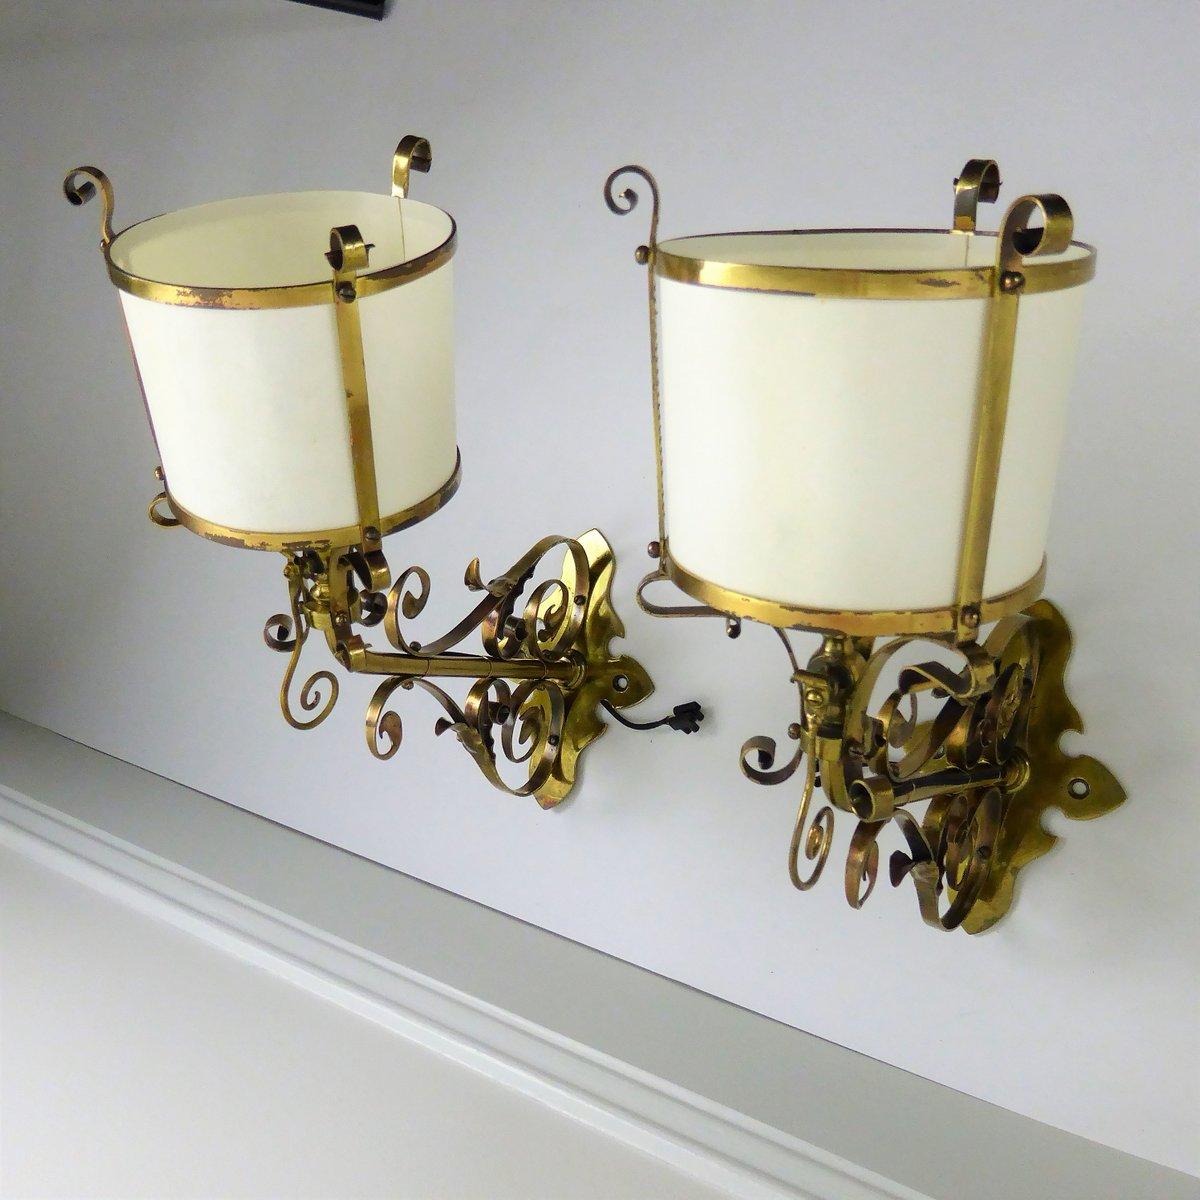 English arts crafts brass wall lamps 1900s set of 2 for sale at english arts crafts brass wall lamps 1900s set of 2 aloadofball